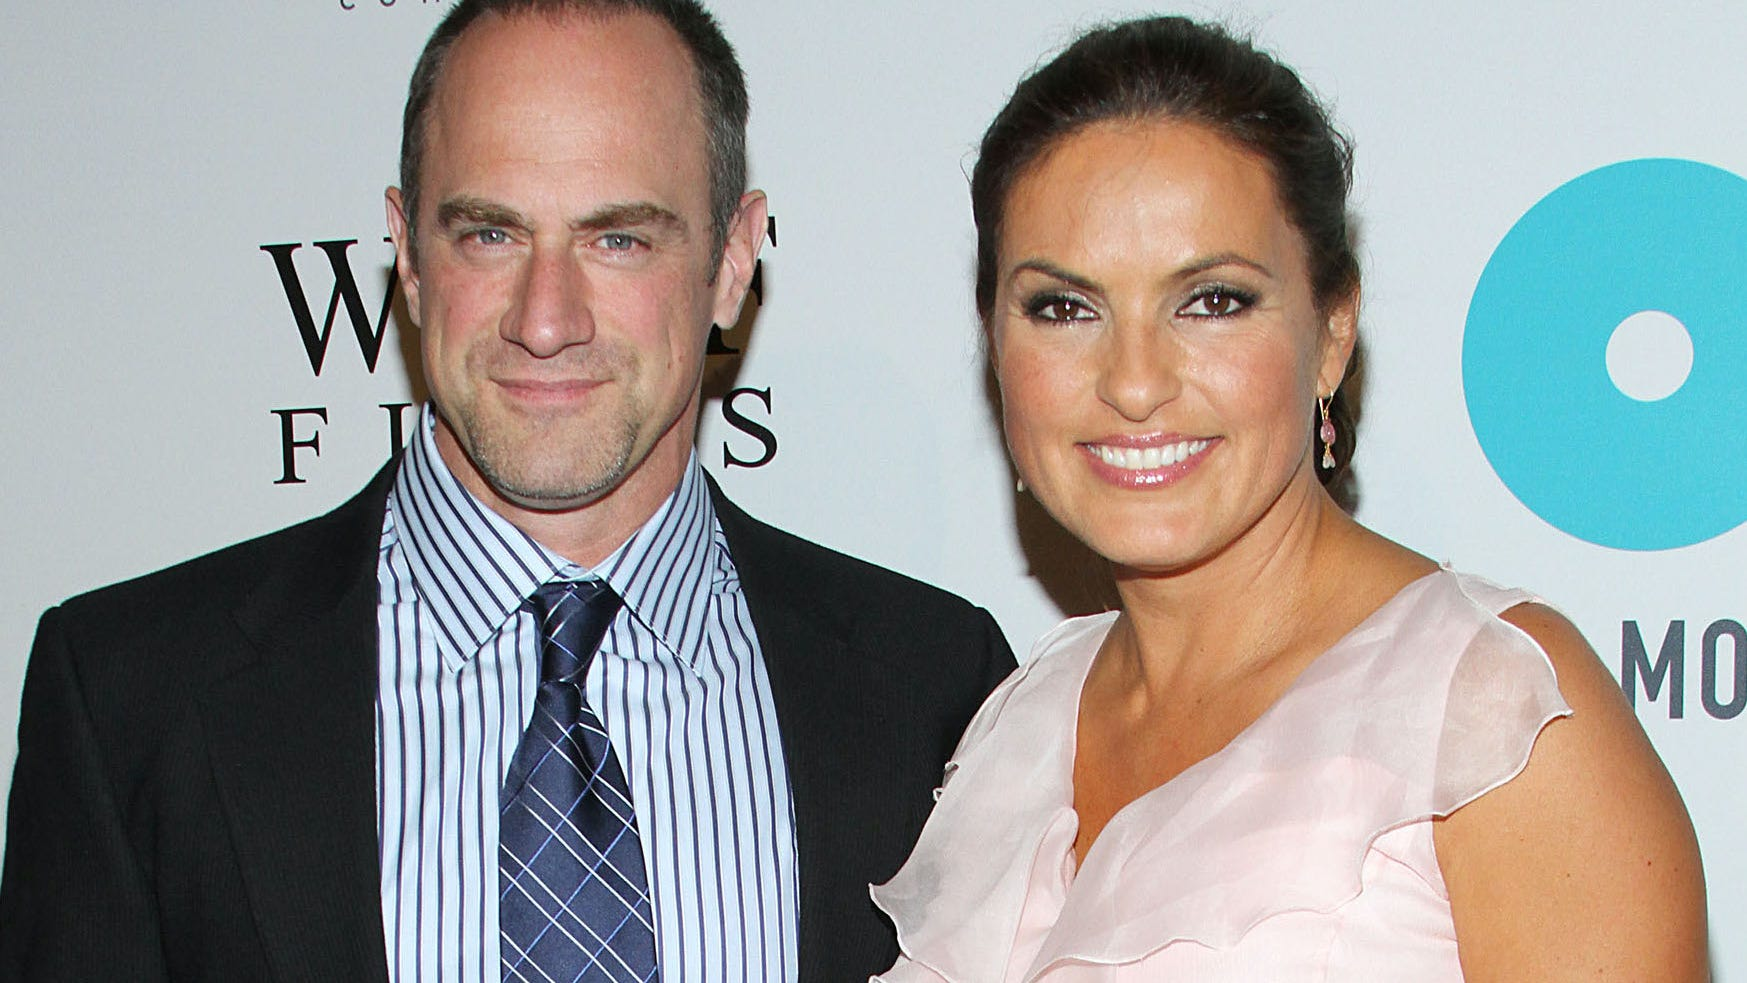 Will they kiss? Christopher Meloni and Mariska Hargitay tease fans with steamy pic on 'Law & Order' set